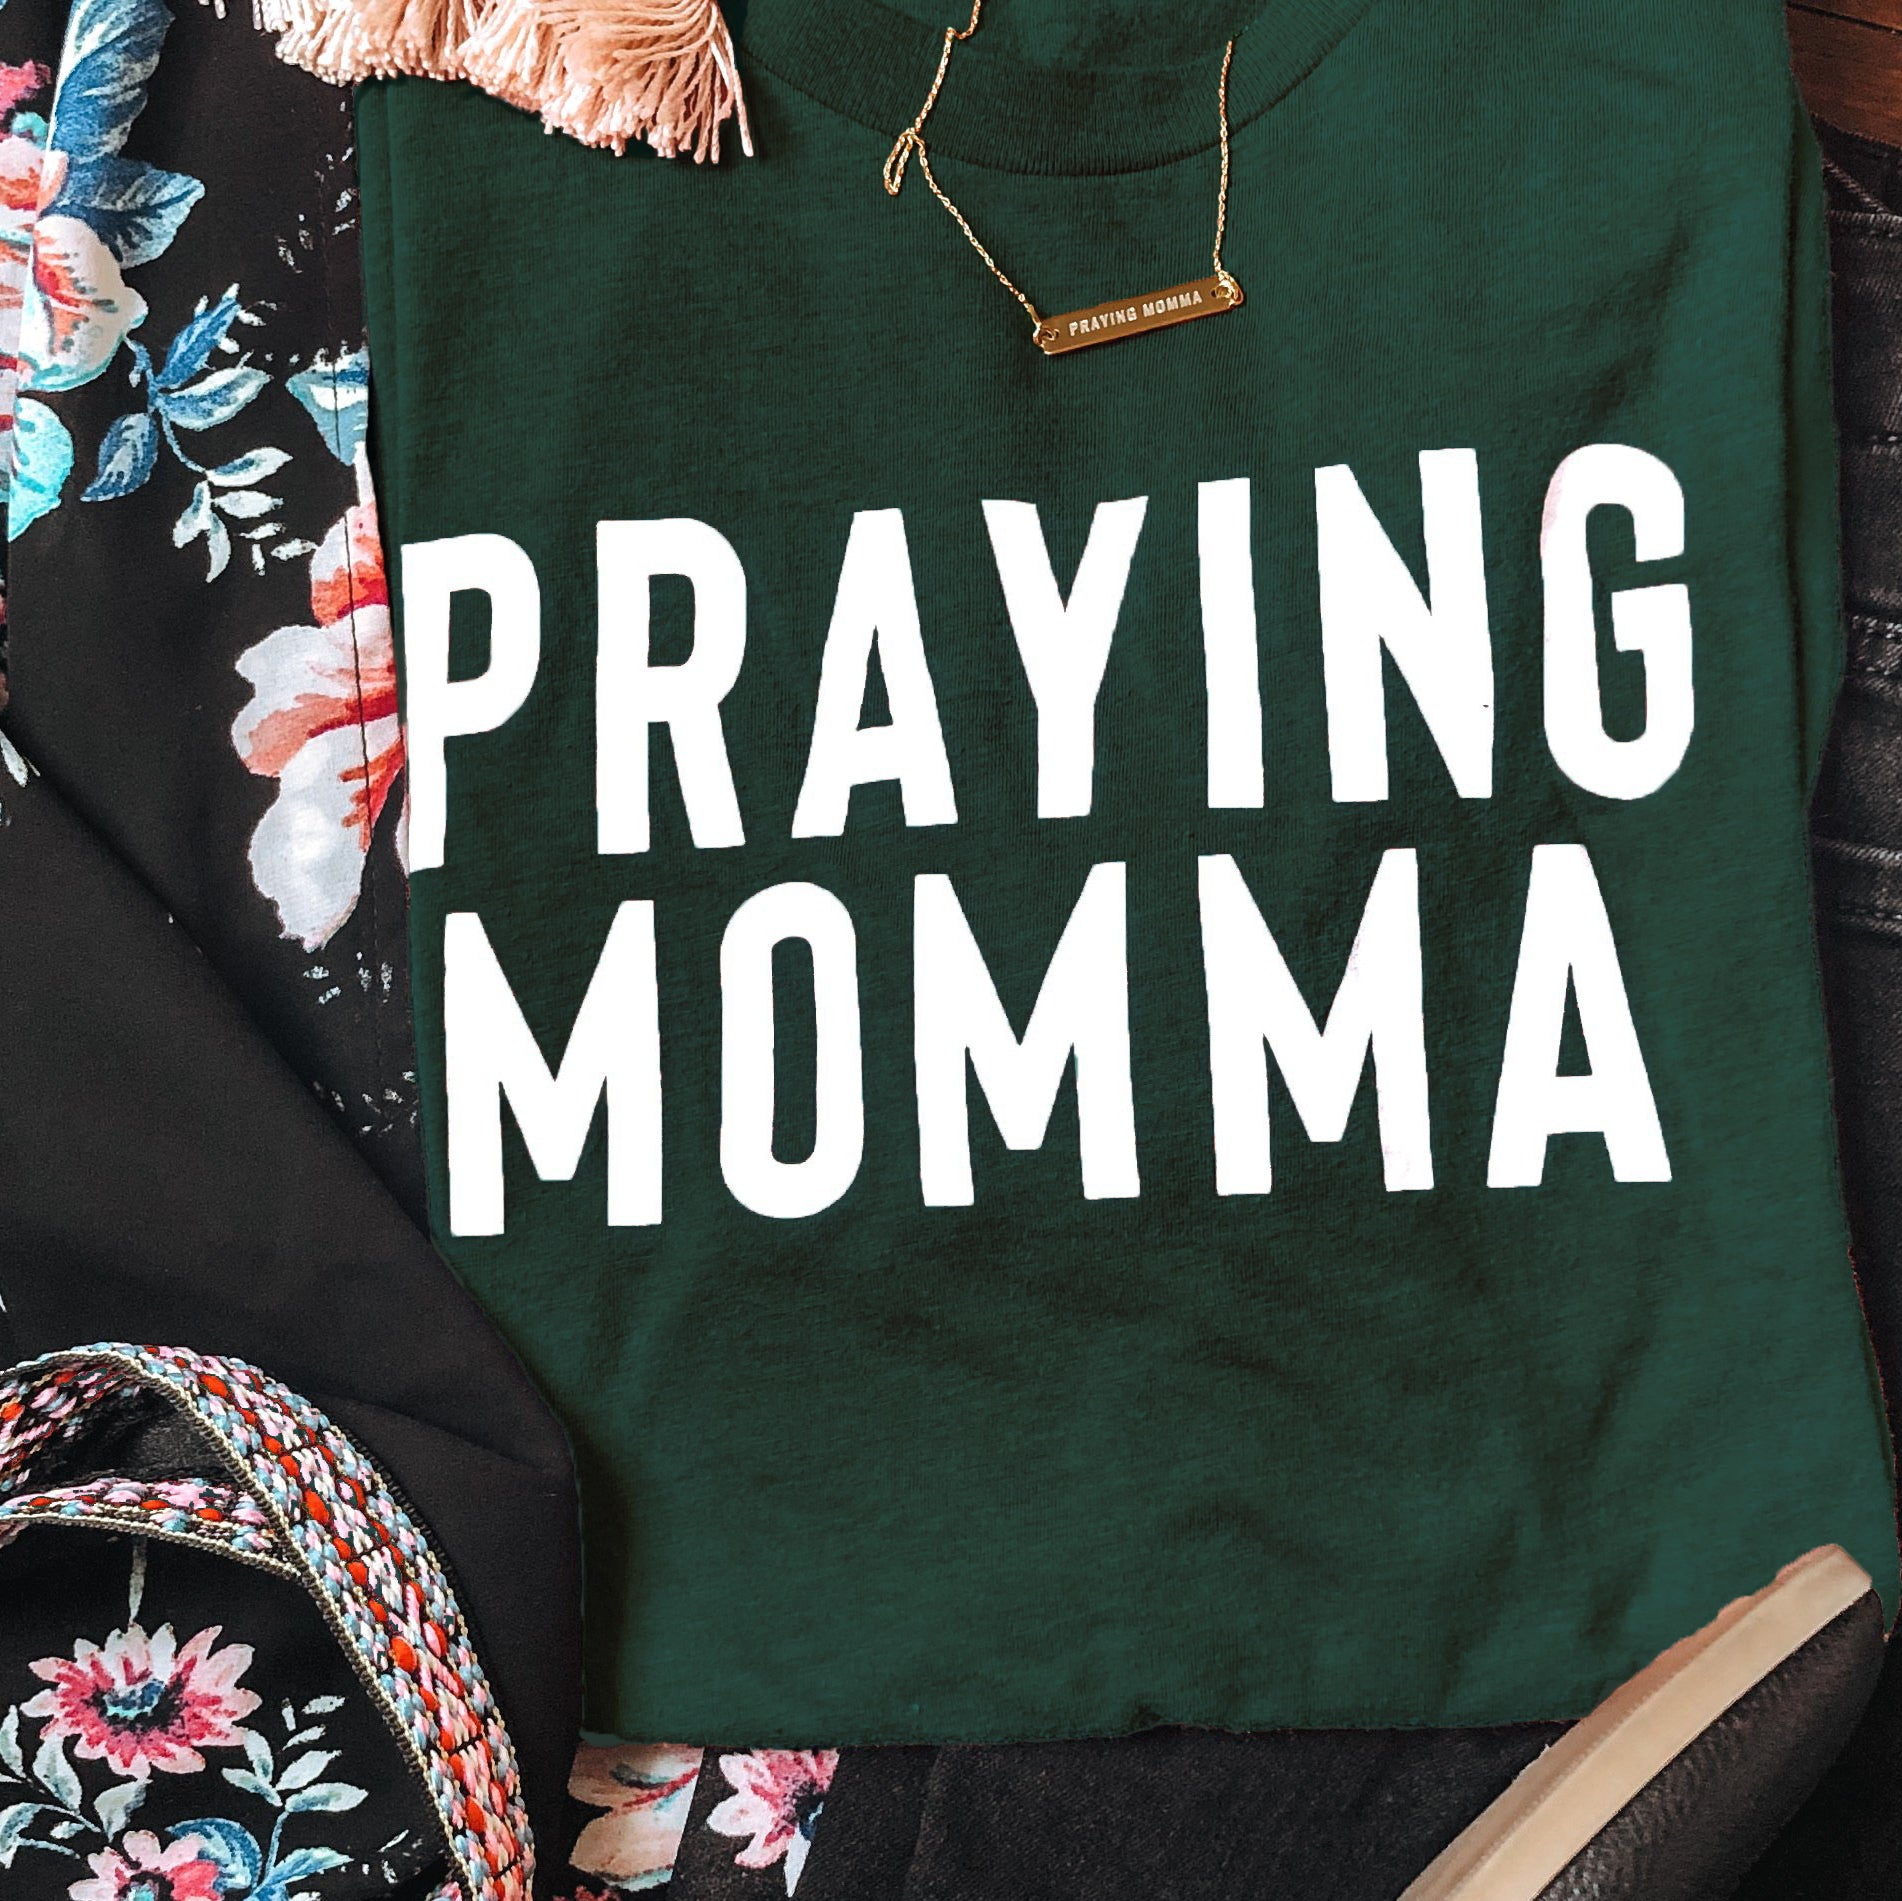 (PRE-ORDER) Praying Momma® T-Shirt | Emerald